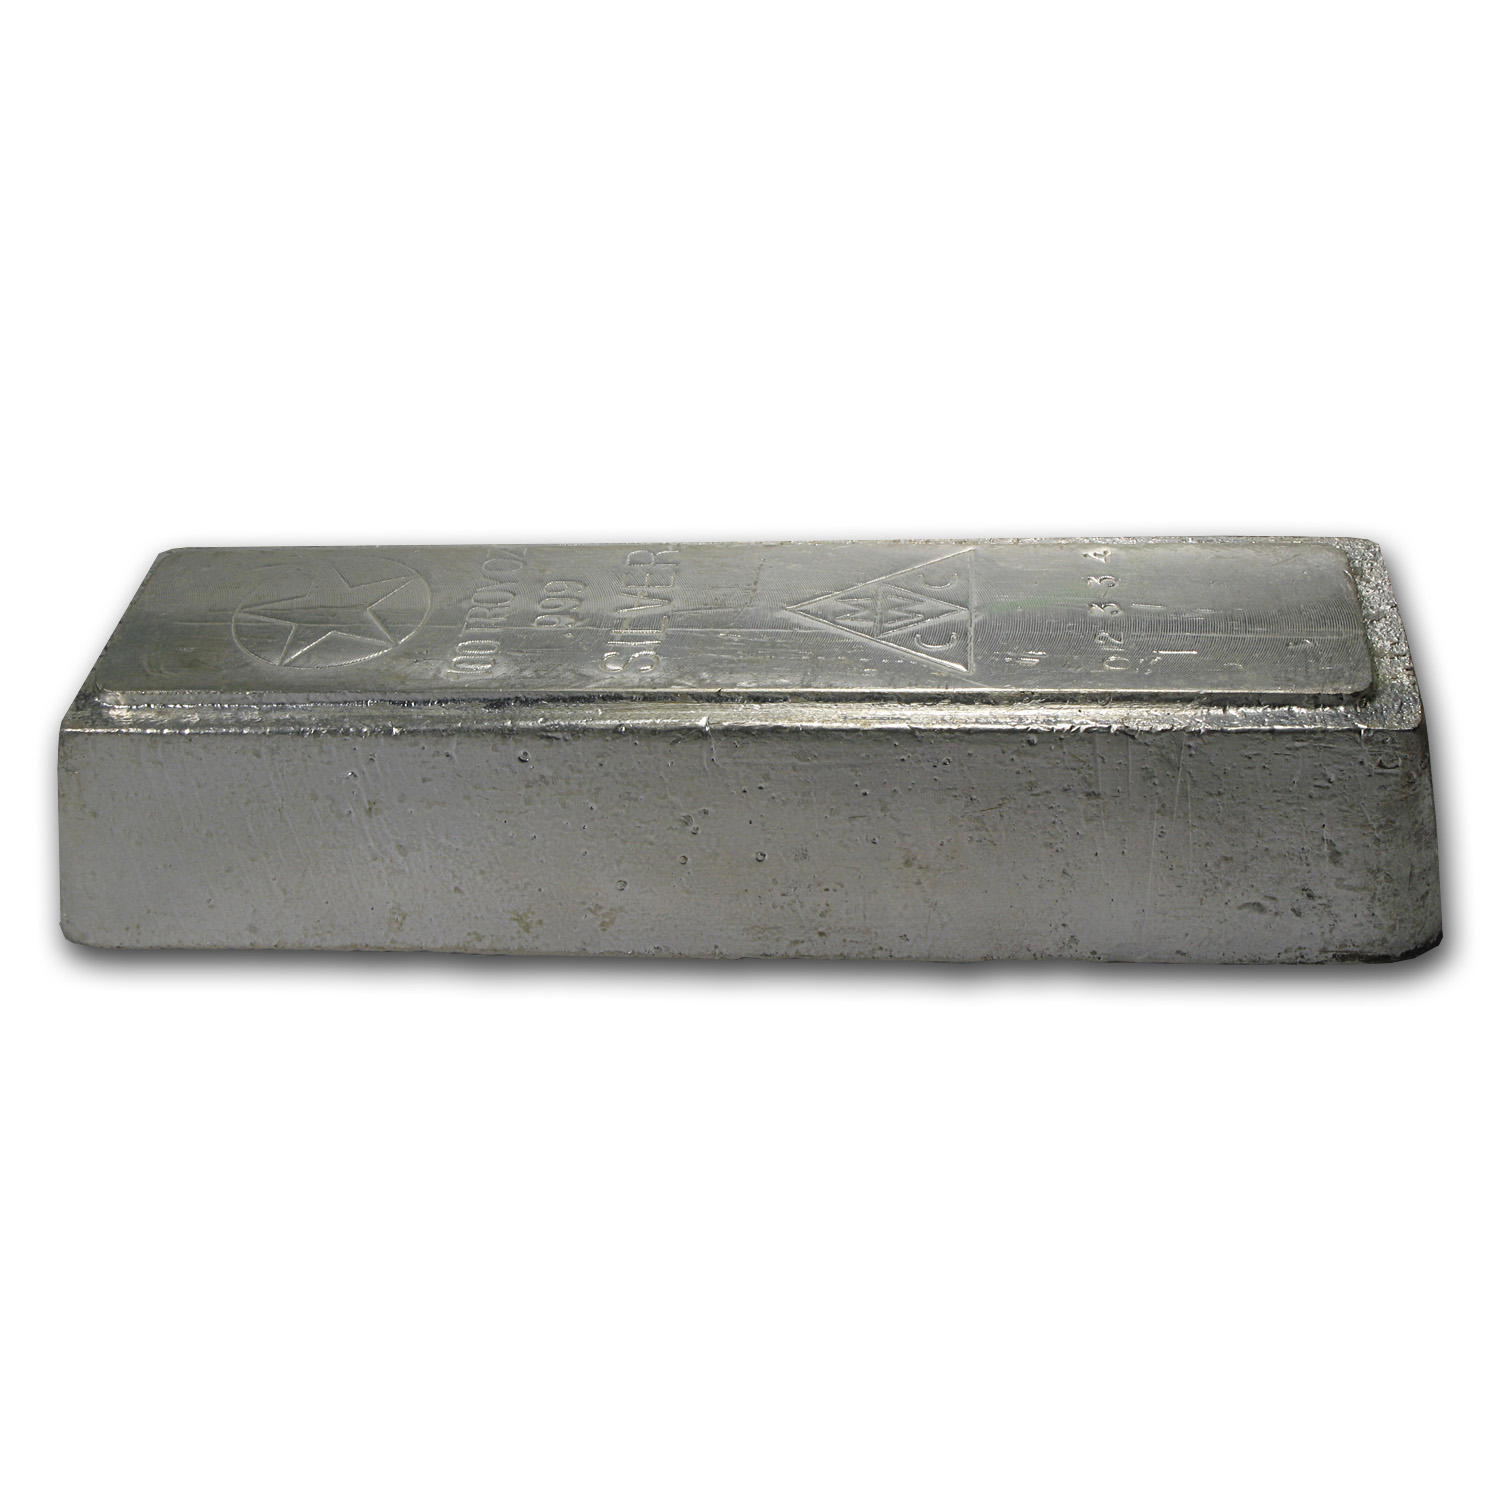 100 oz Silver Bars - American Republic Silver Co.